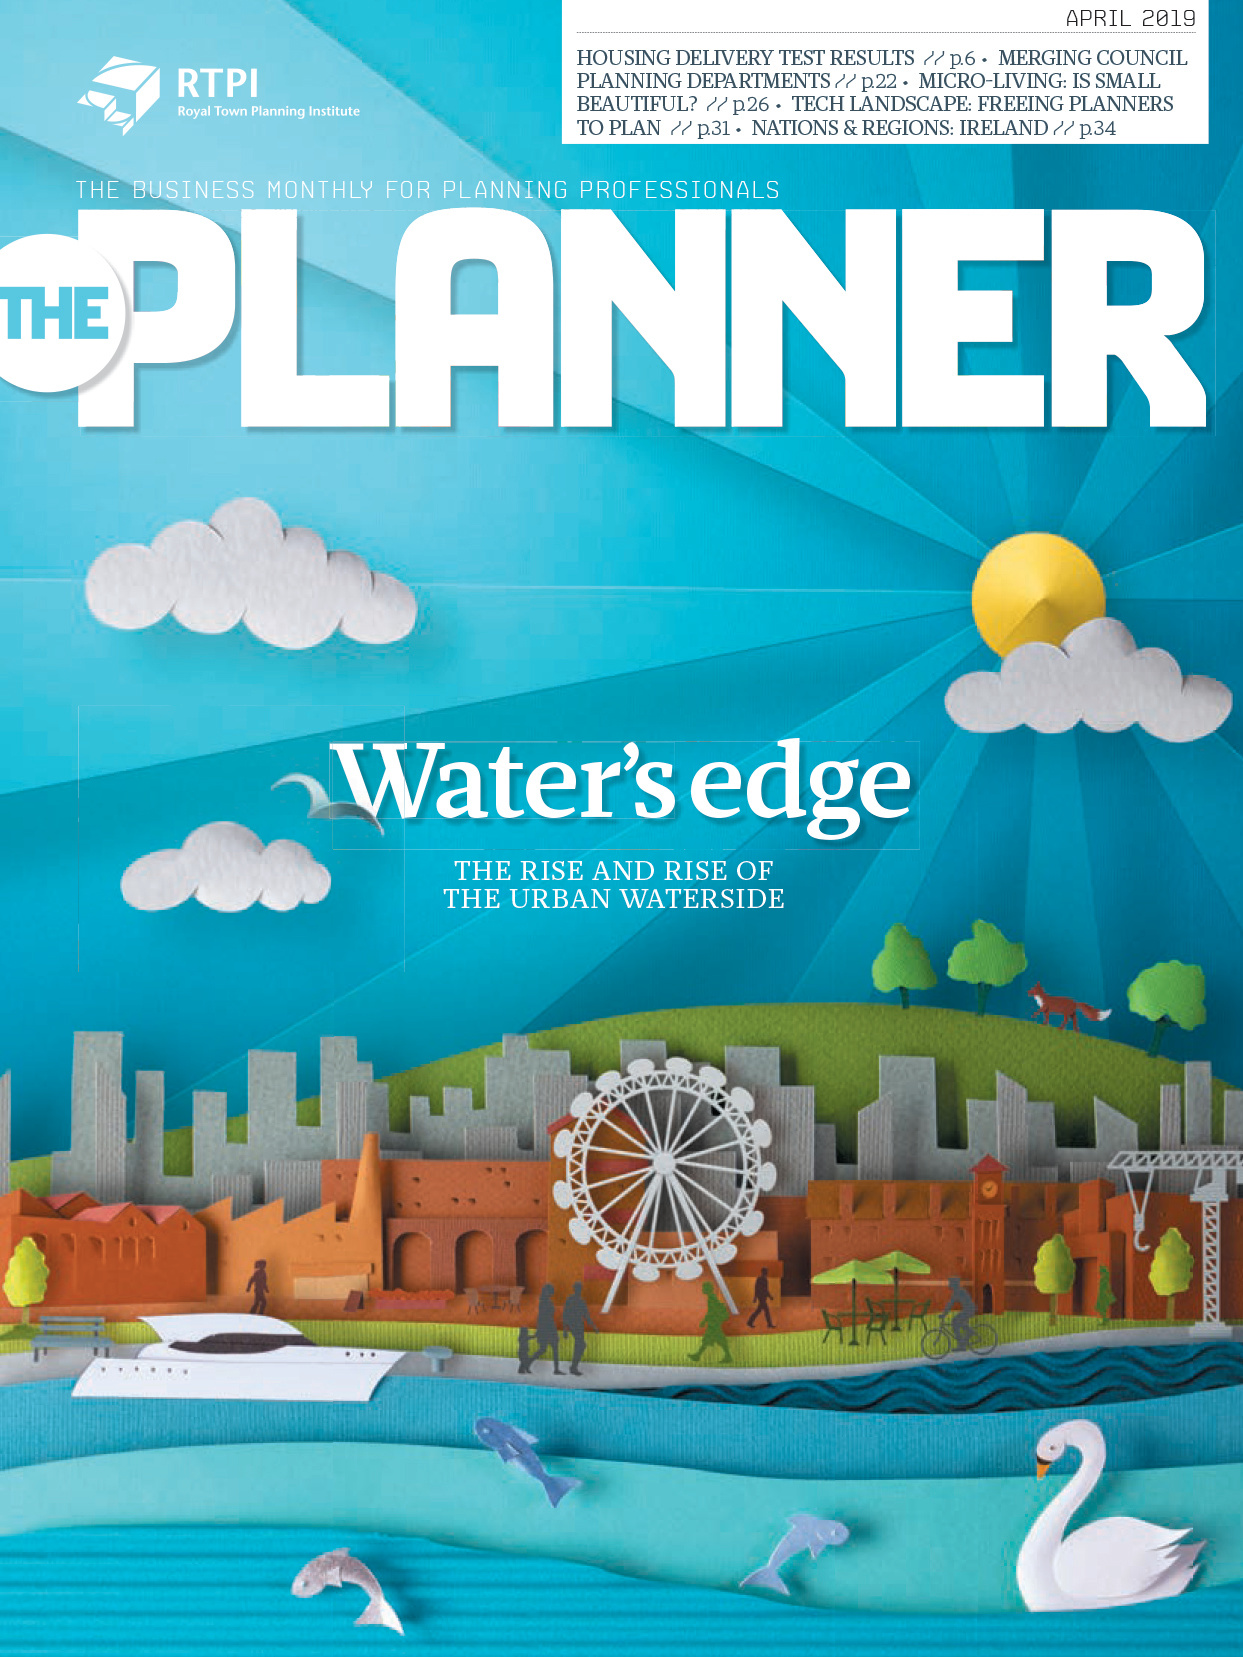 4. The Planner April 2019